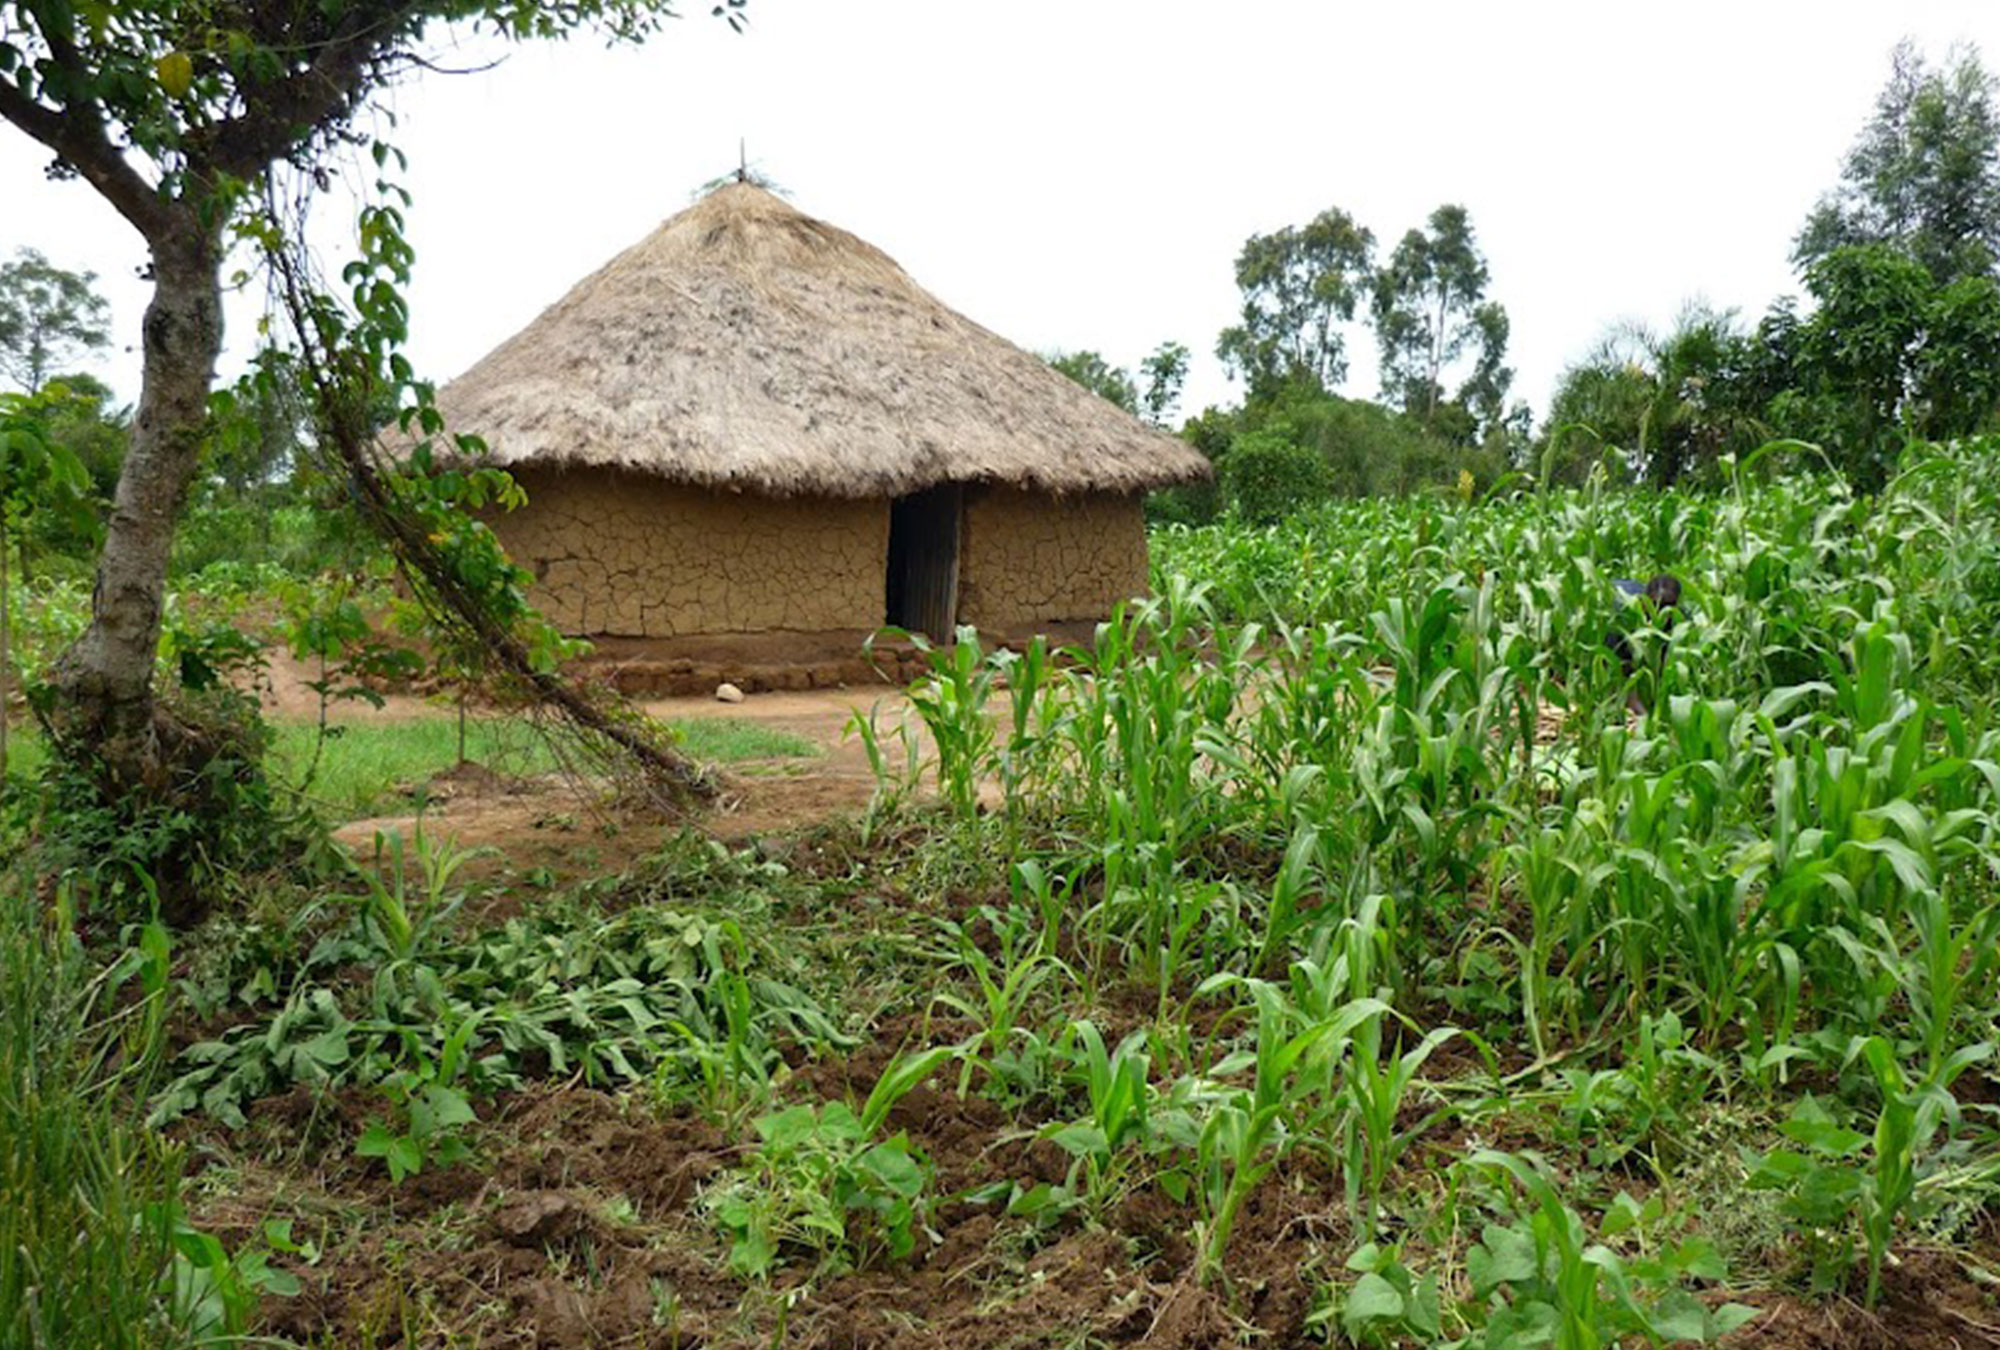 Mud house with thatch roof in corn field